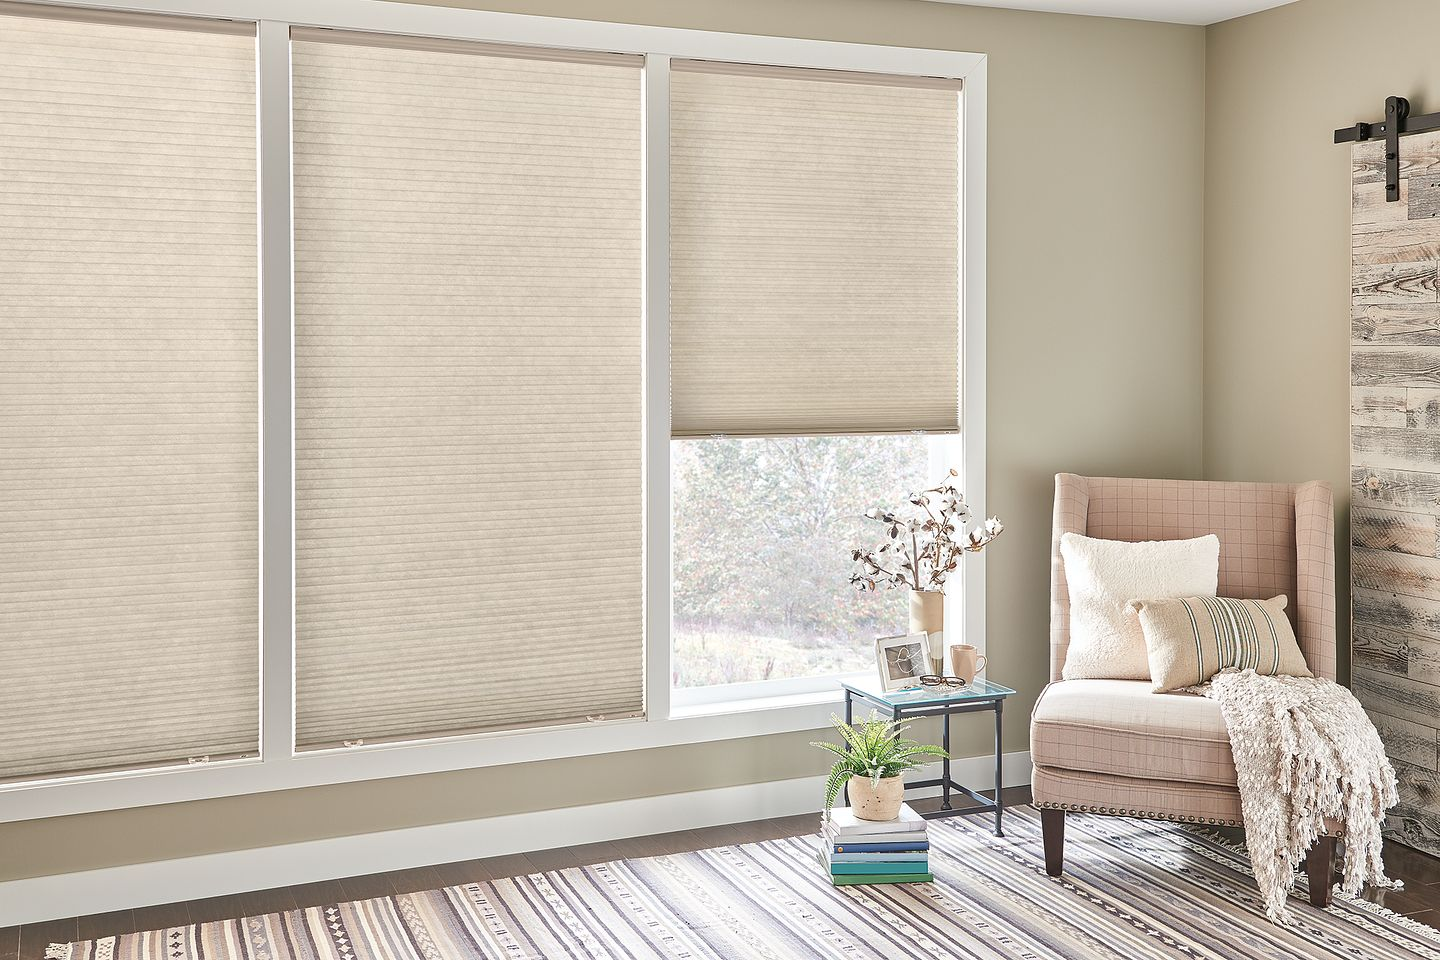 Bali Cellular Shades with Cordless Lift